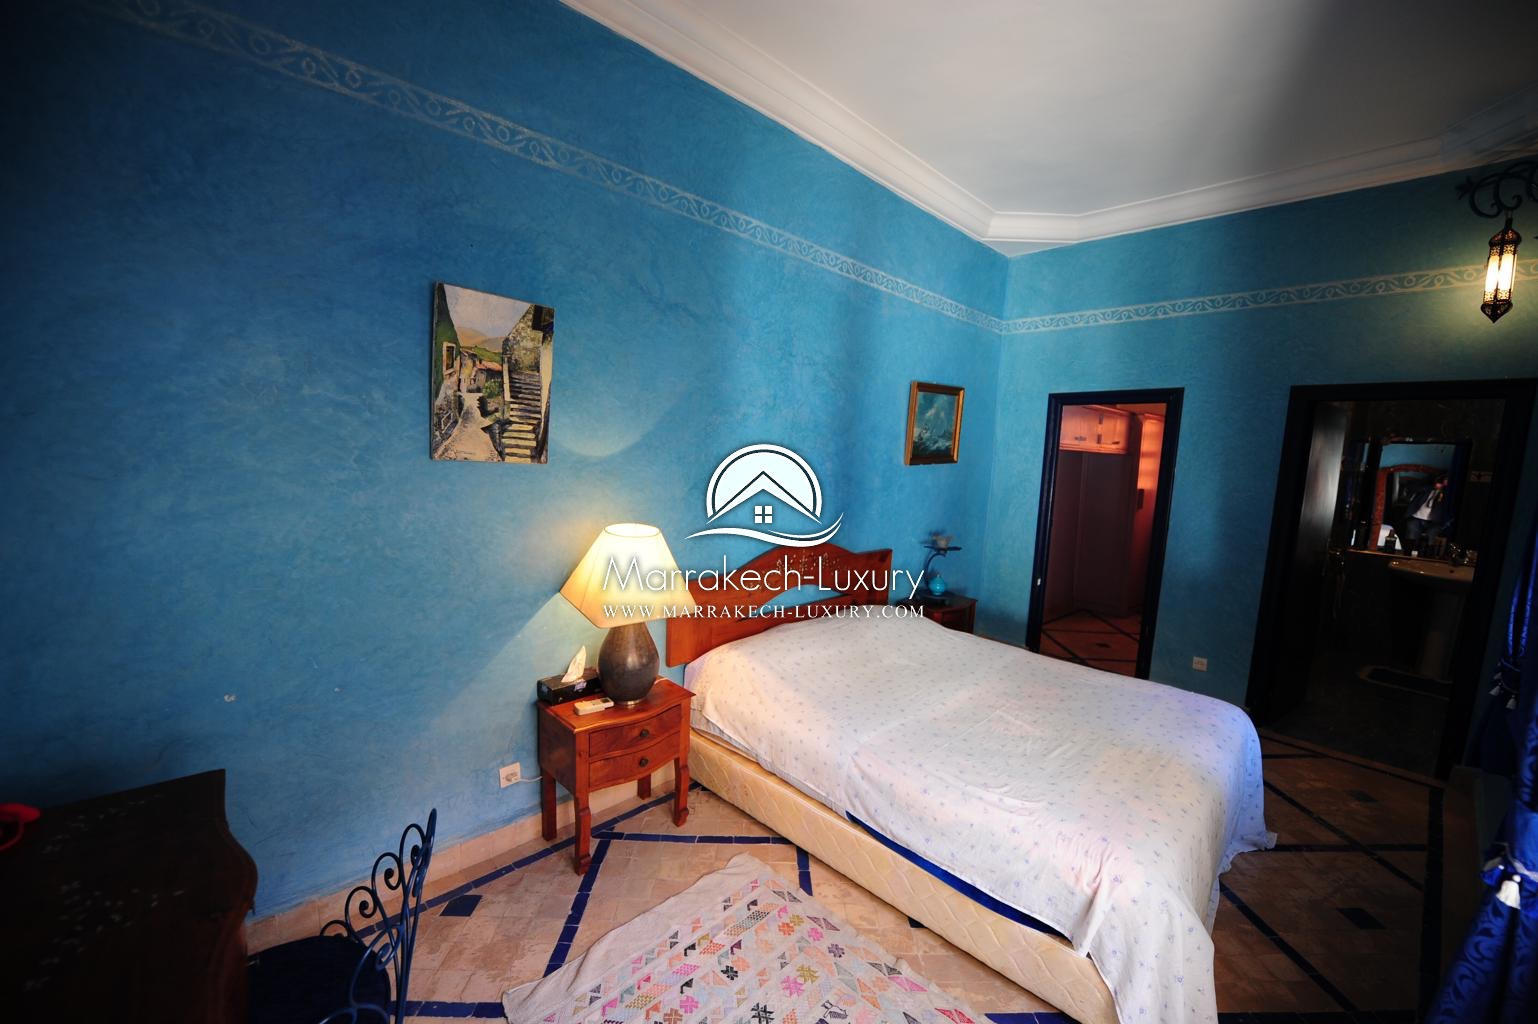 Riaavmed1036ma 33 agence immobili re marrakech acheter for Agence immobiliere 33